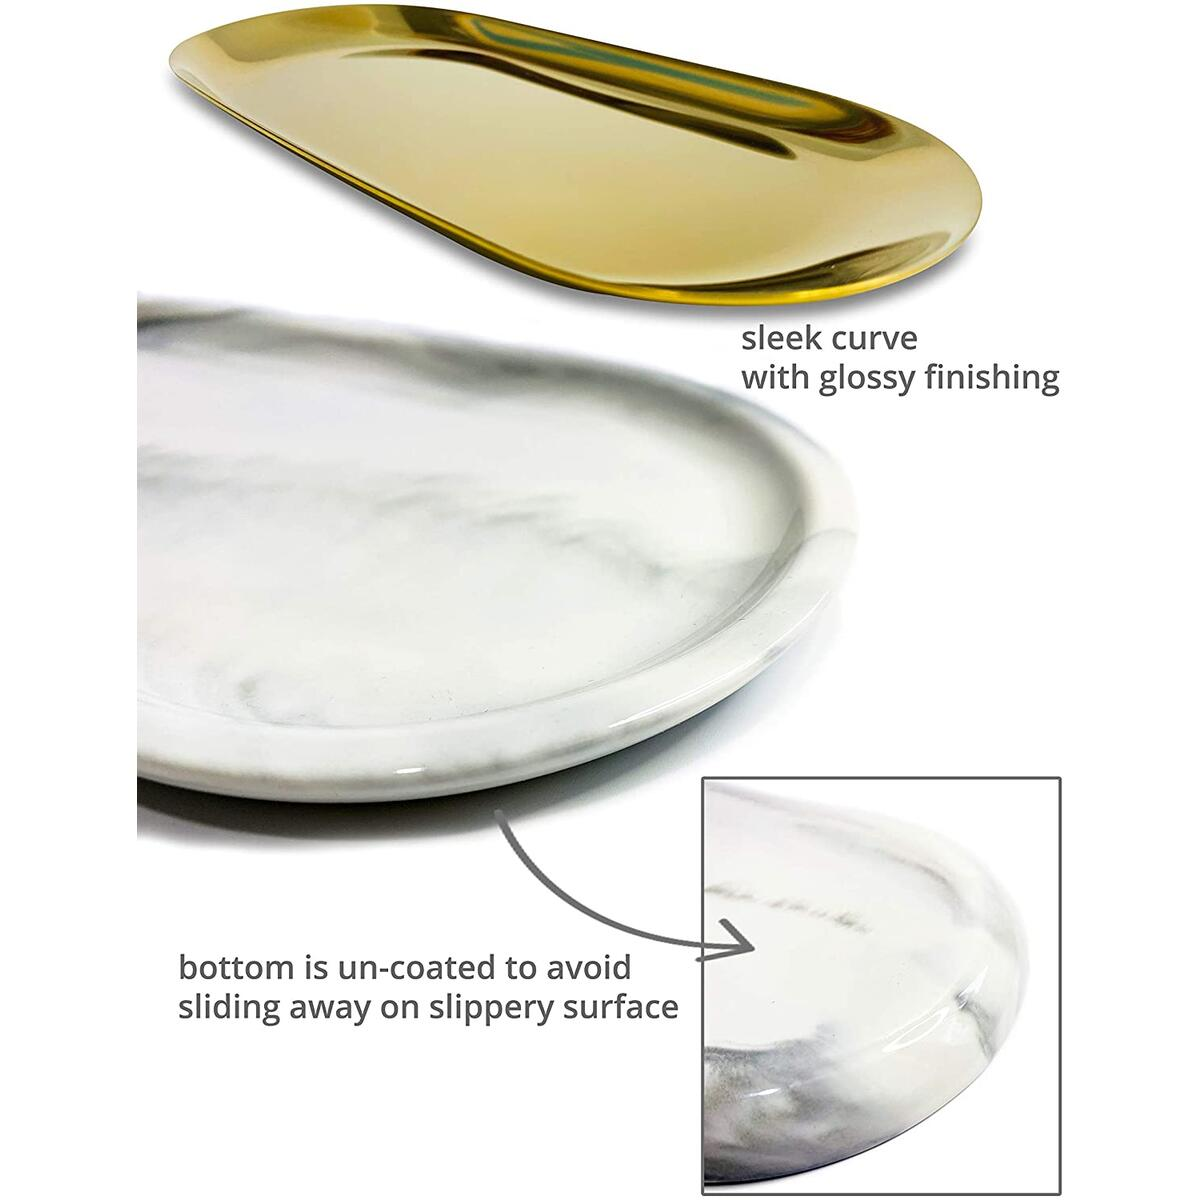 White Ceramic Marble Pattern Tray with Stainless Steel Gold Trinket Tray, Both Decorative and Storage Function,Multiple Use for Your Bathroom Countertop Or Bedroom Vanity